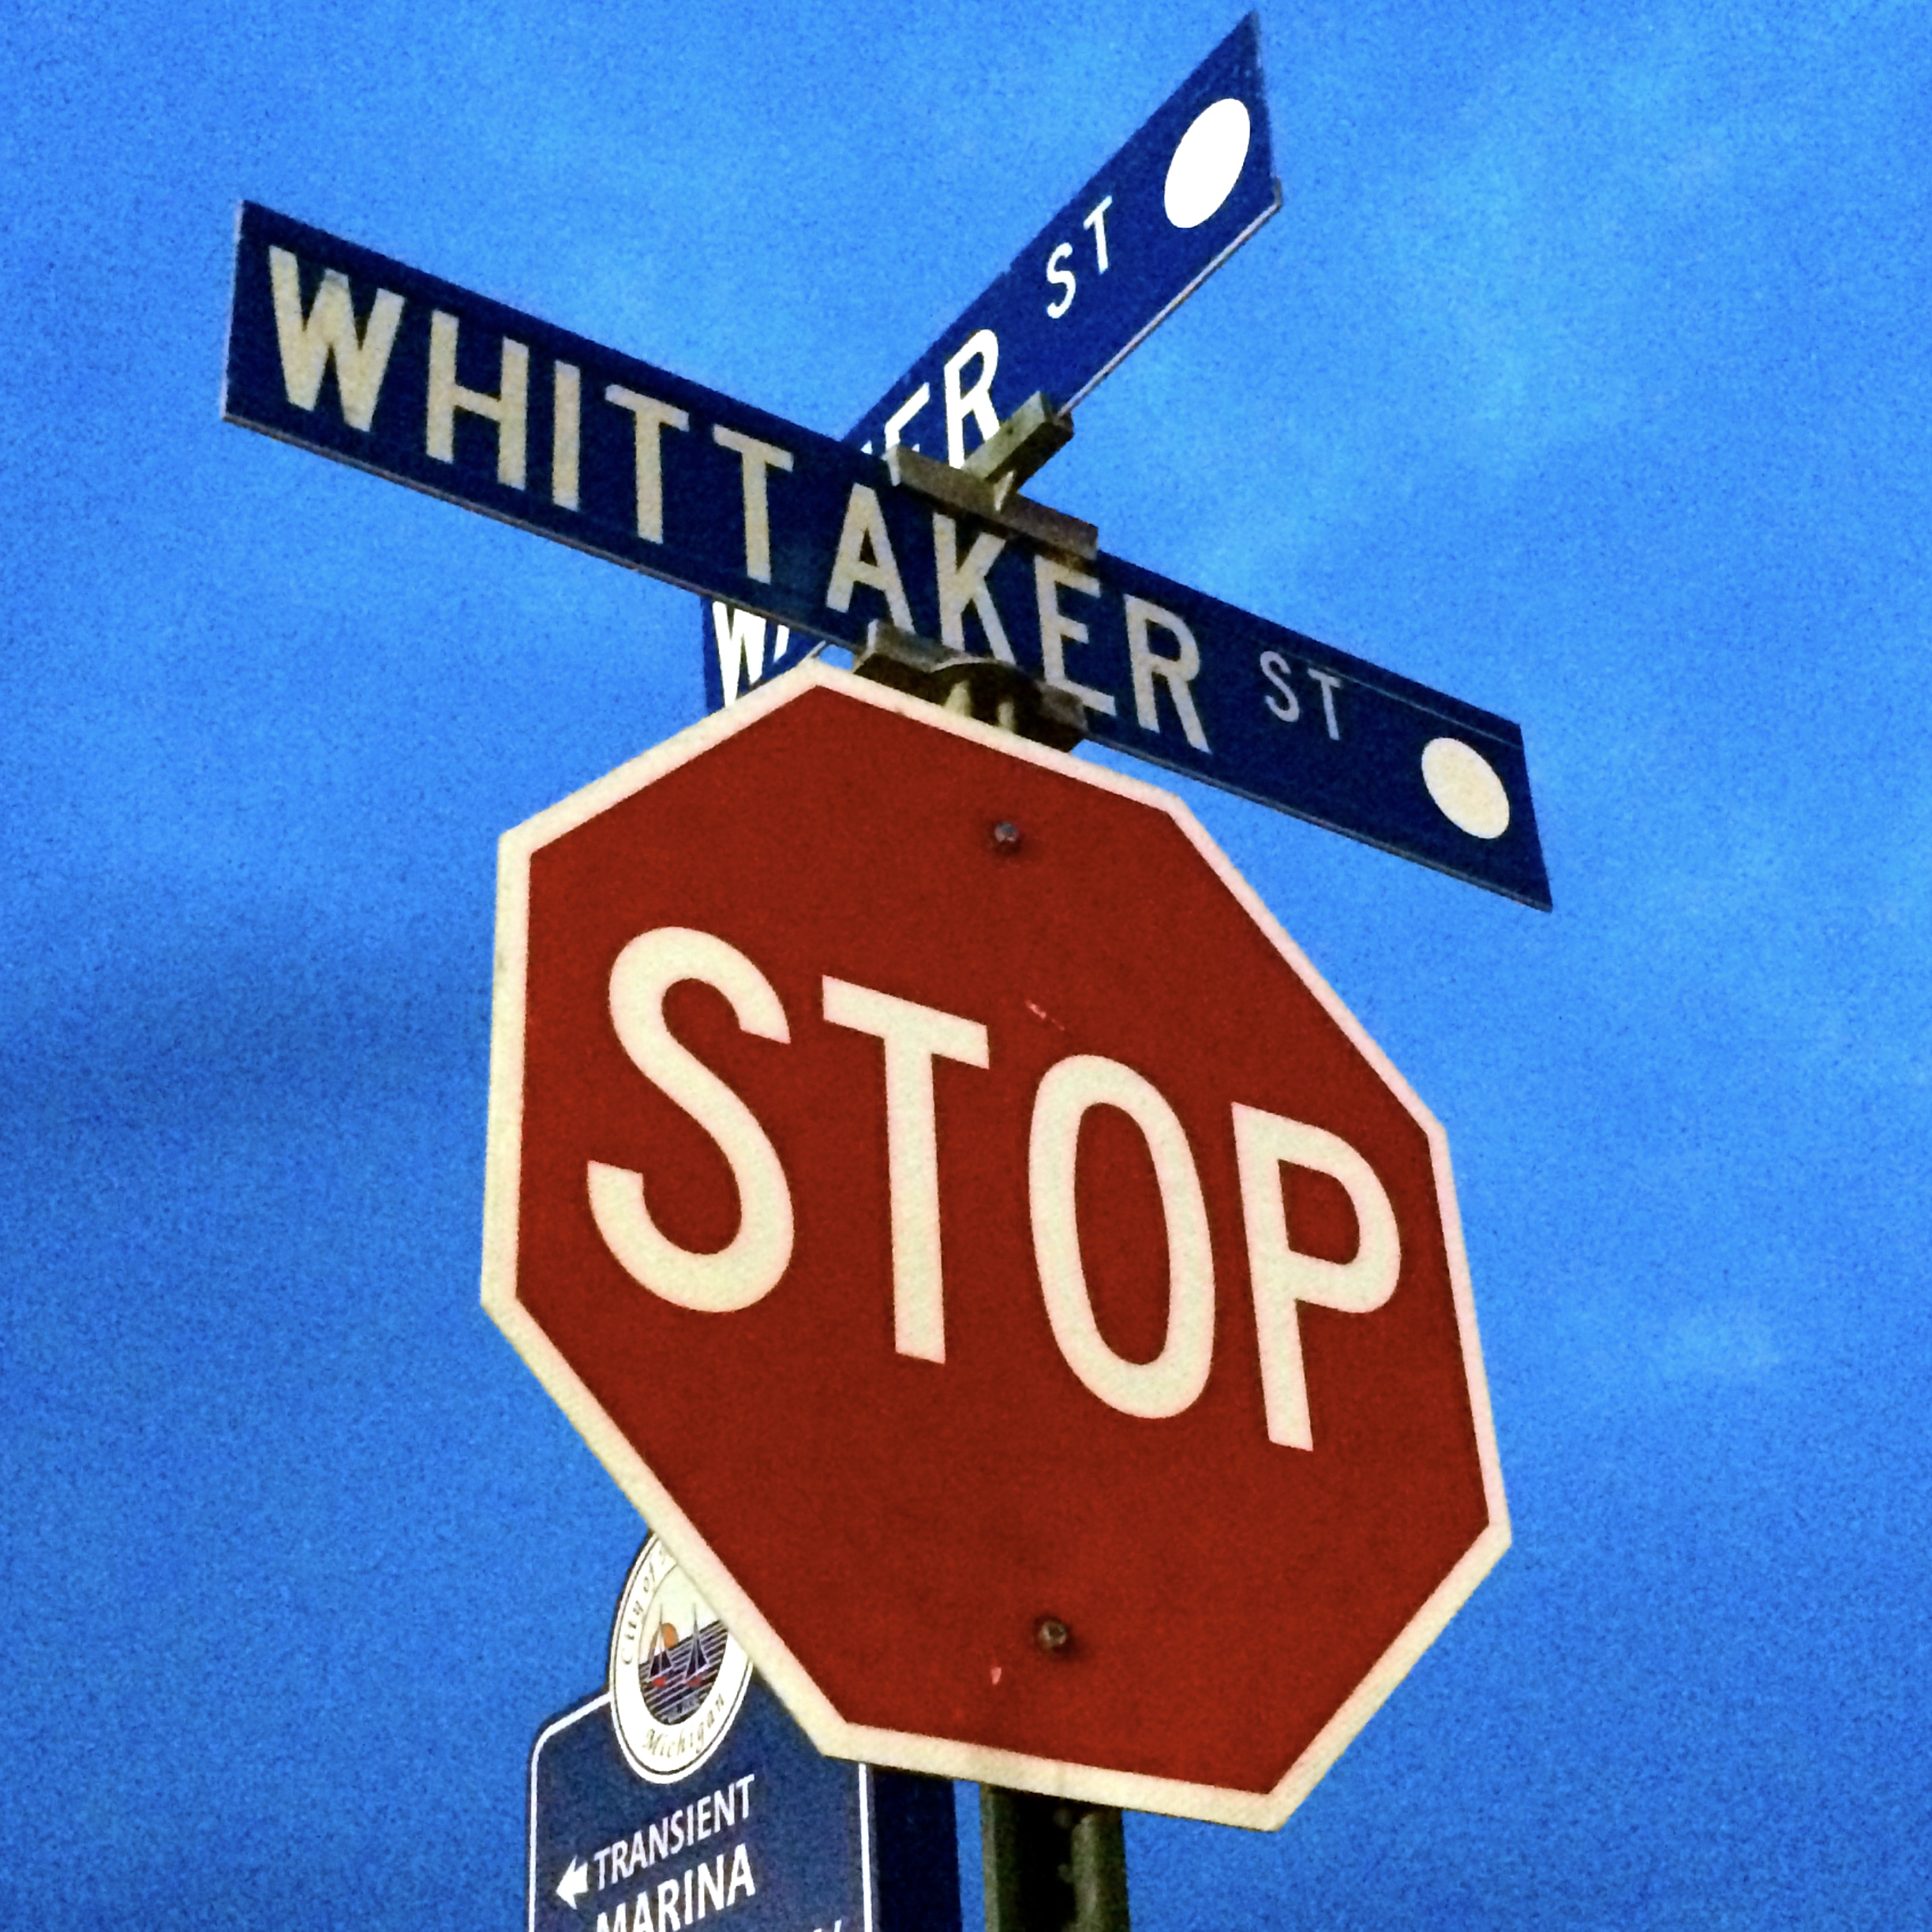 At the corner of Whittaker and Water